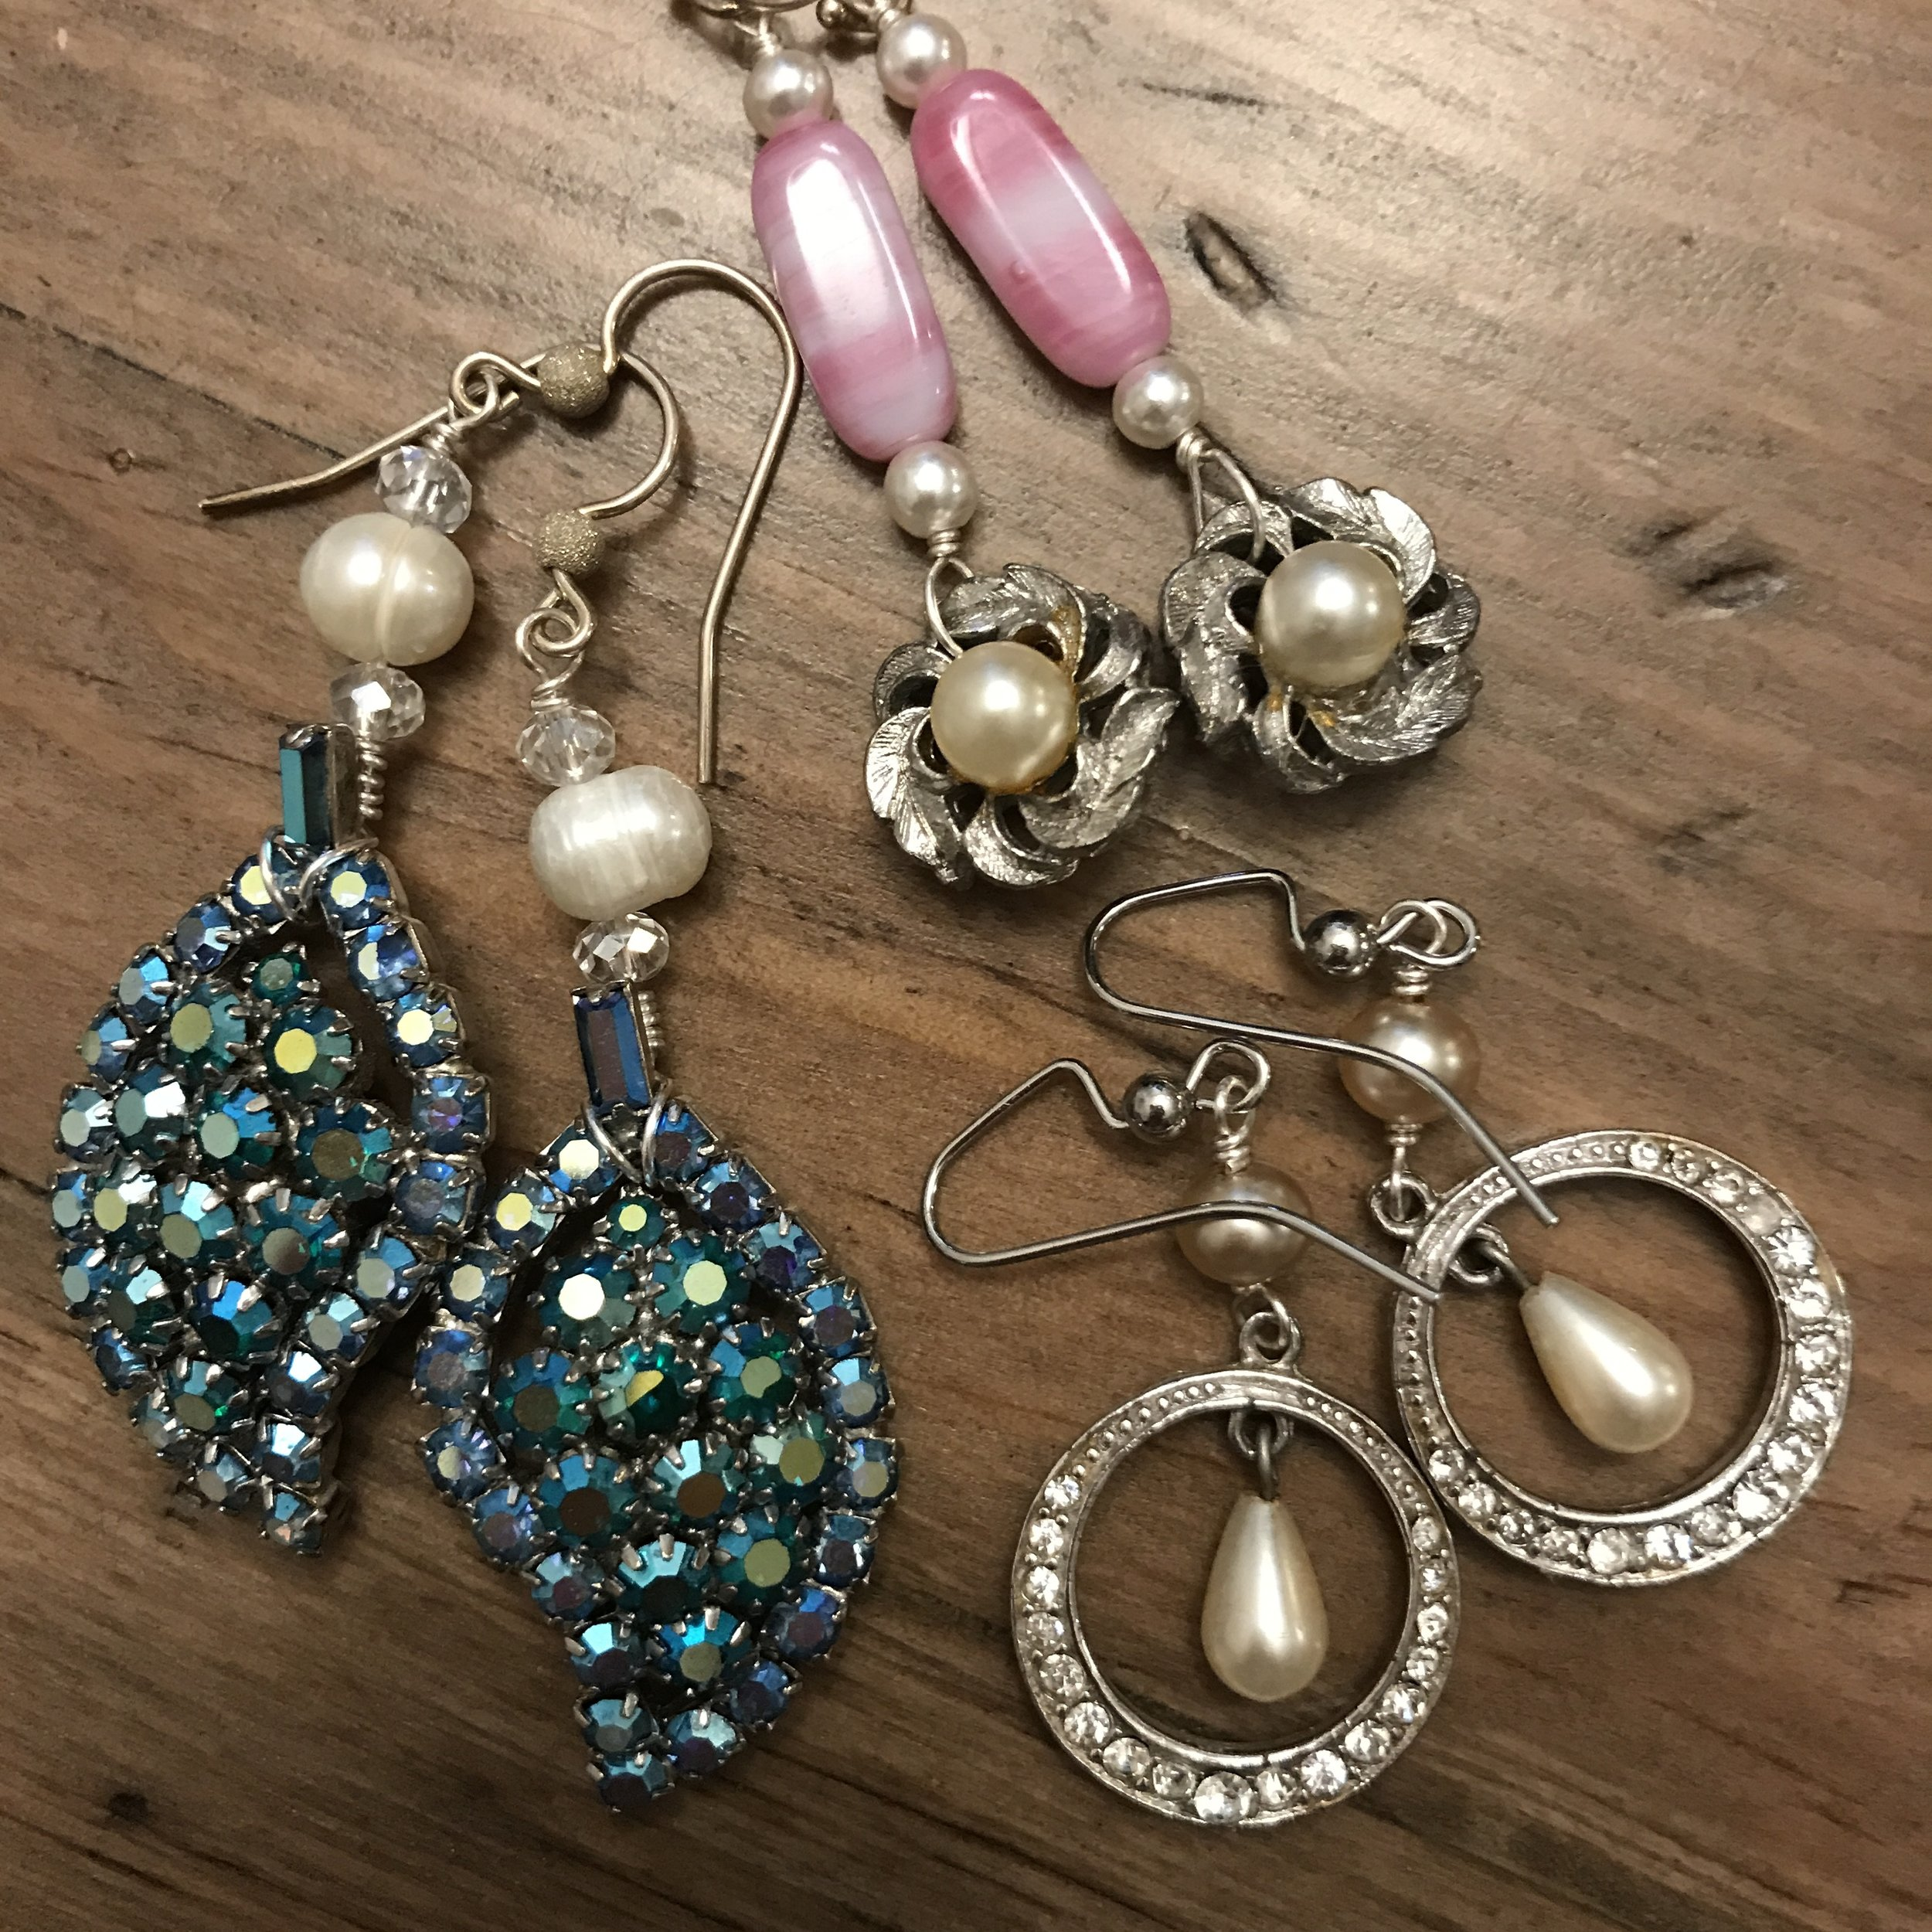 Just a few of the repurposed vintage earrings from the 1940s, 1950s and 1960s that will soon be available at   http://www.ResparkableVintage.etsy.com